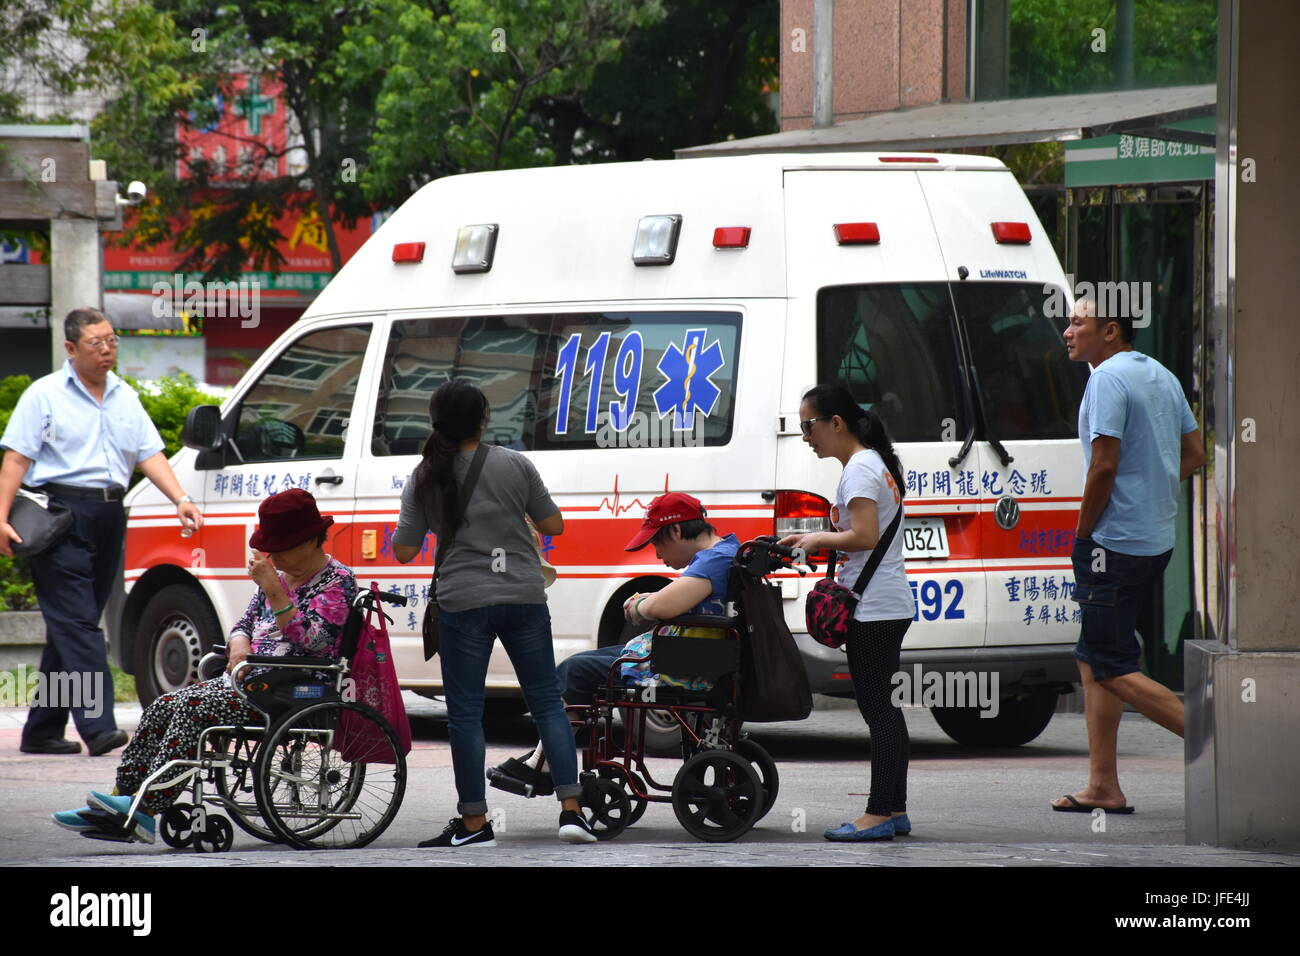 Ambulances parked outside the front entrance to Mackay Hospital, Taipei, Taiwan. Some were parked to deliver, others - Stock Image